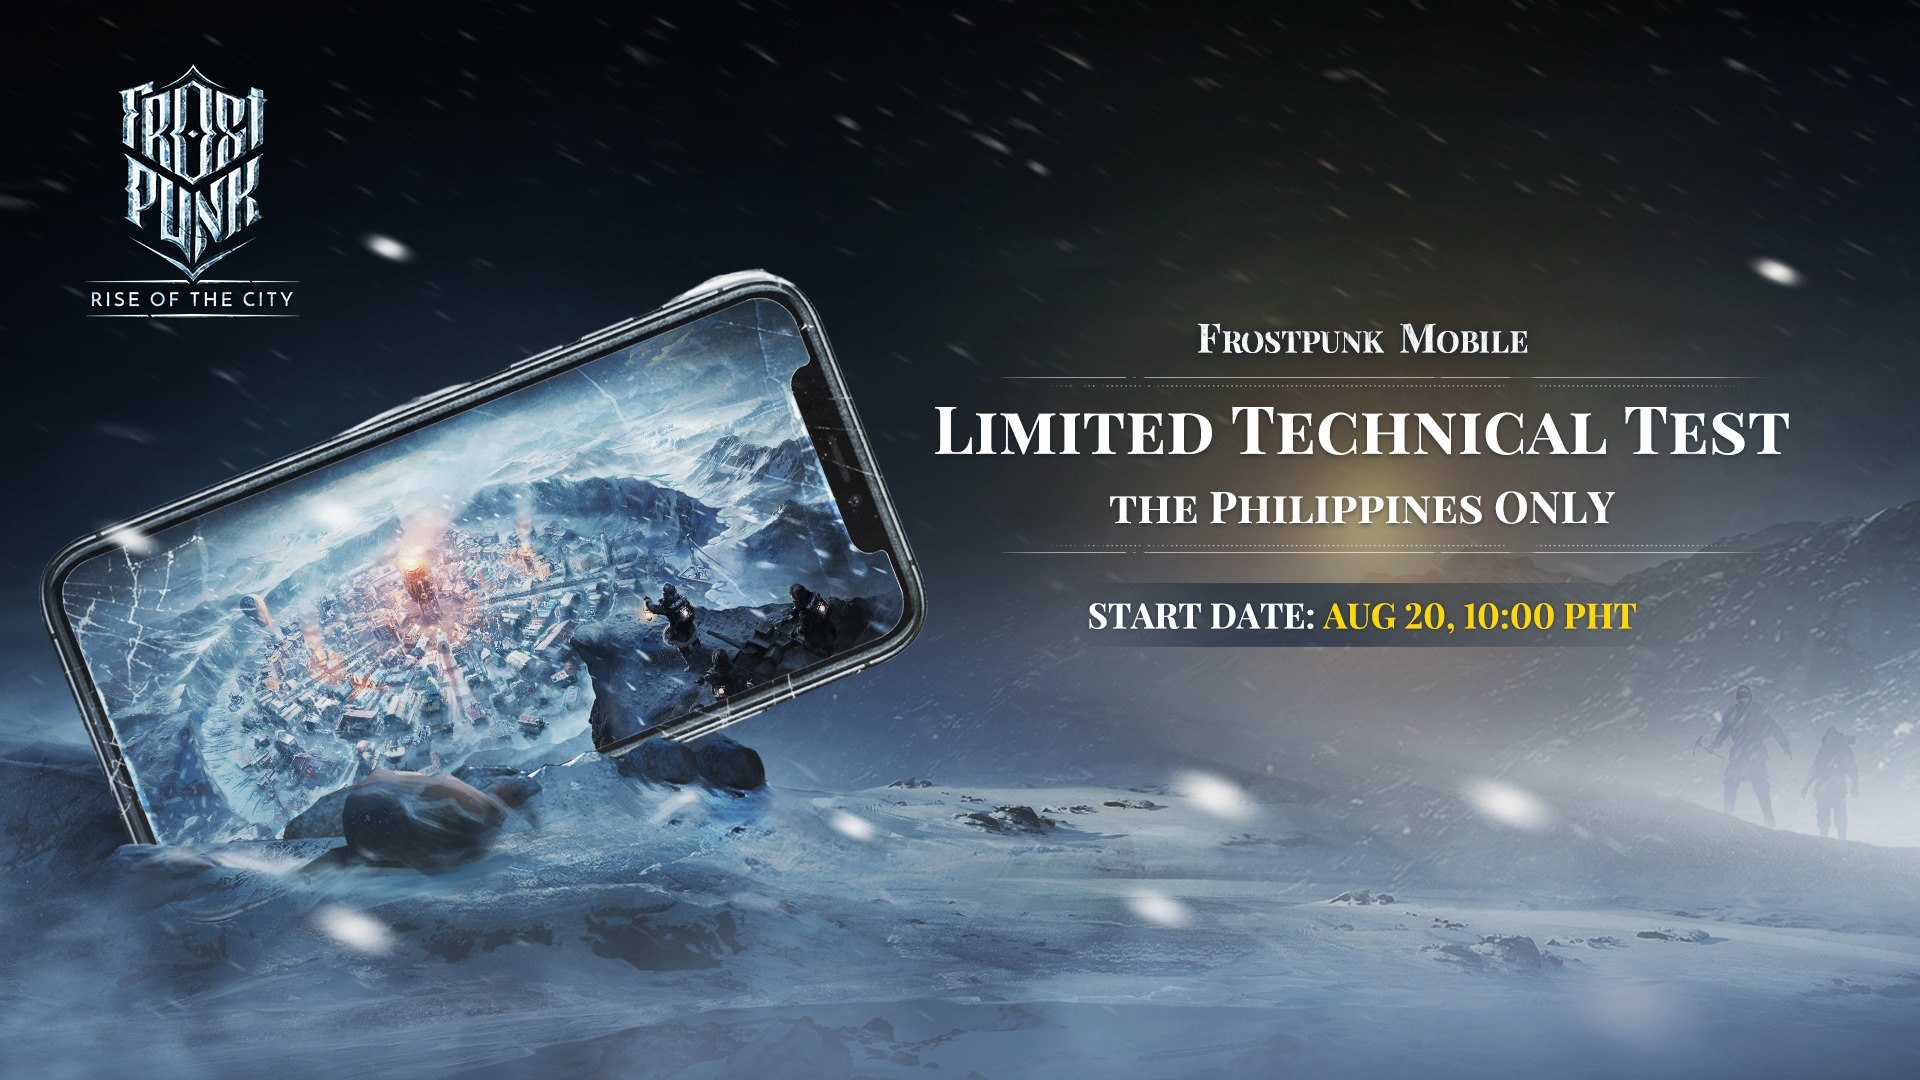 Frostpunk: Rise of the City Gives Limited Early Access to Players in the Philippines